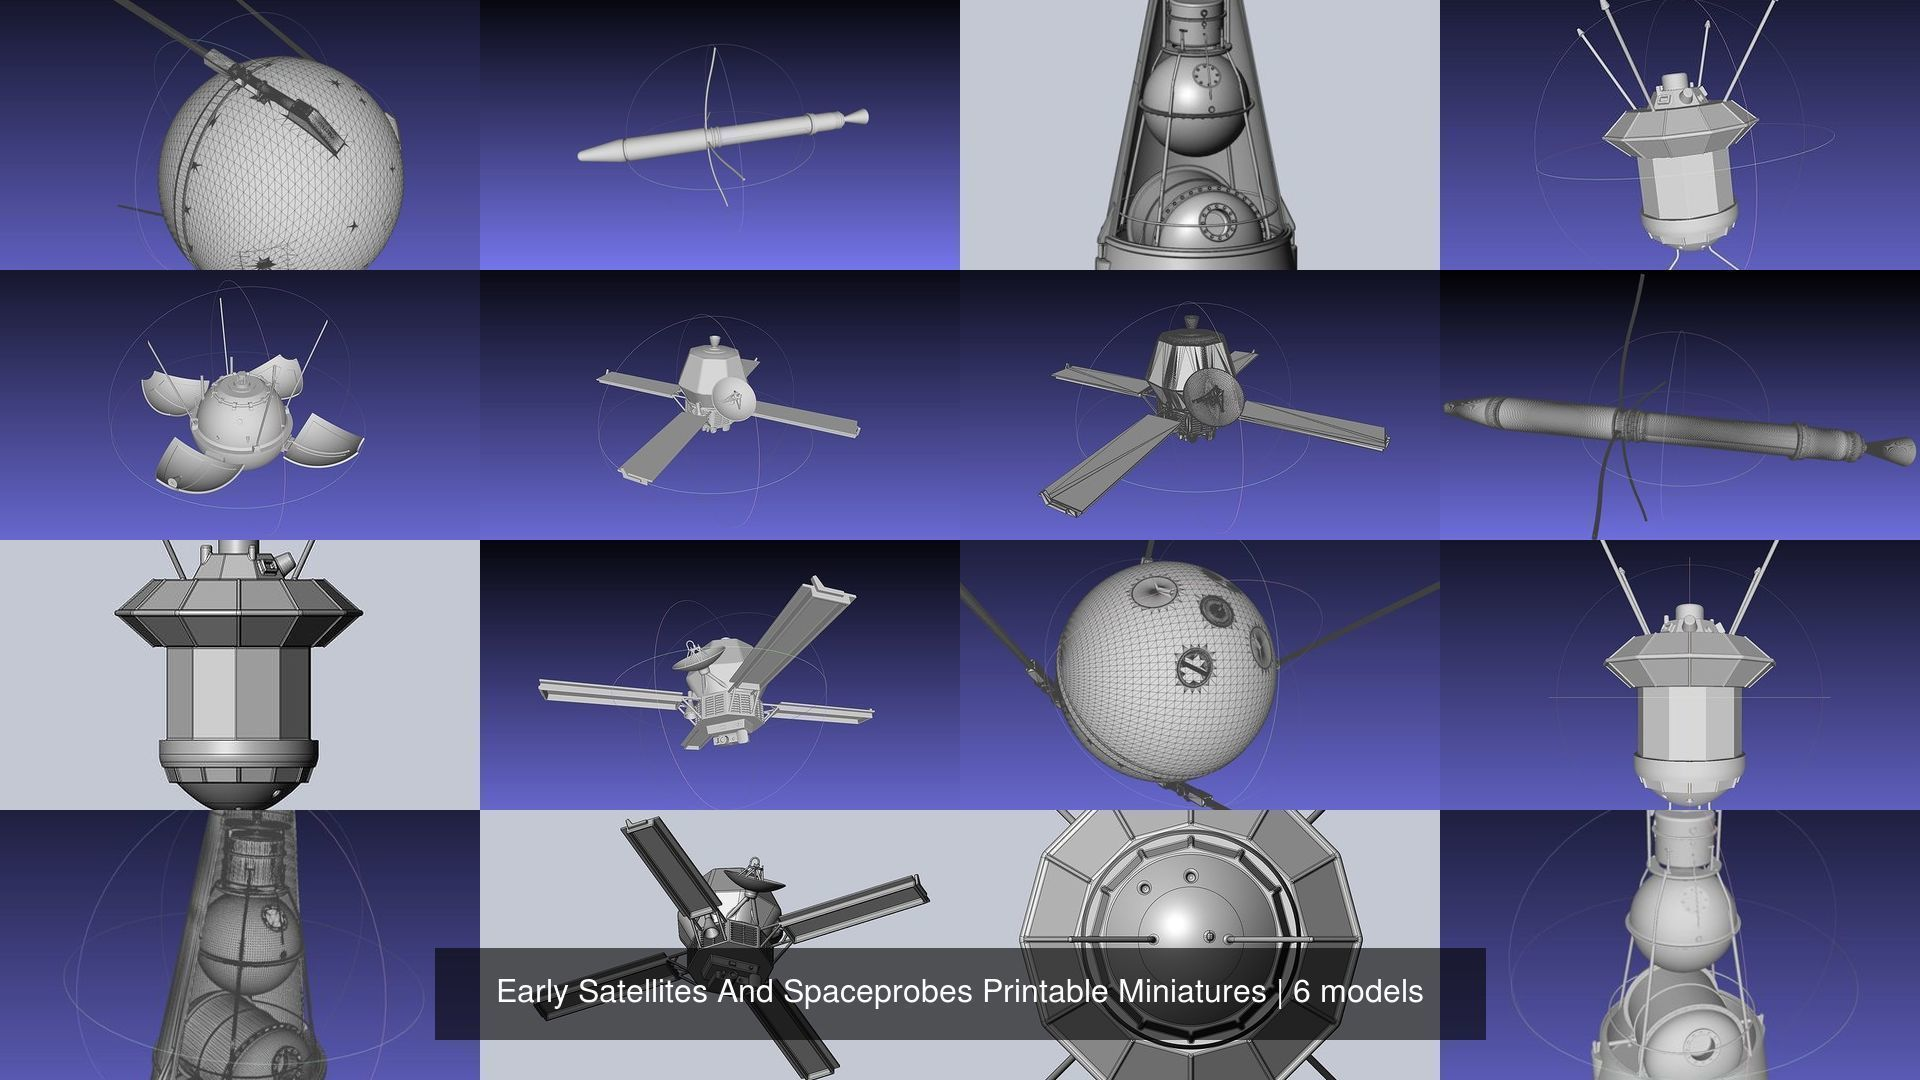 picture relating to Printable Miniatures known as Early Satellites And Spaceprobes Printable Miniatures 3D Style Assortment